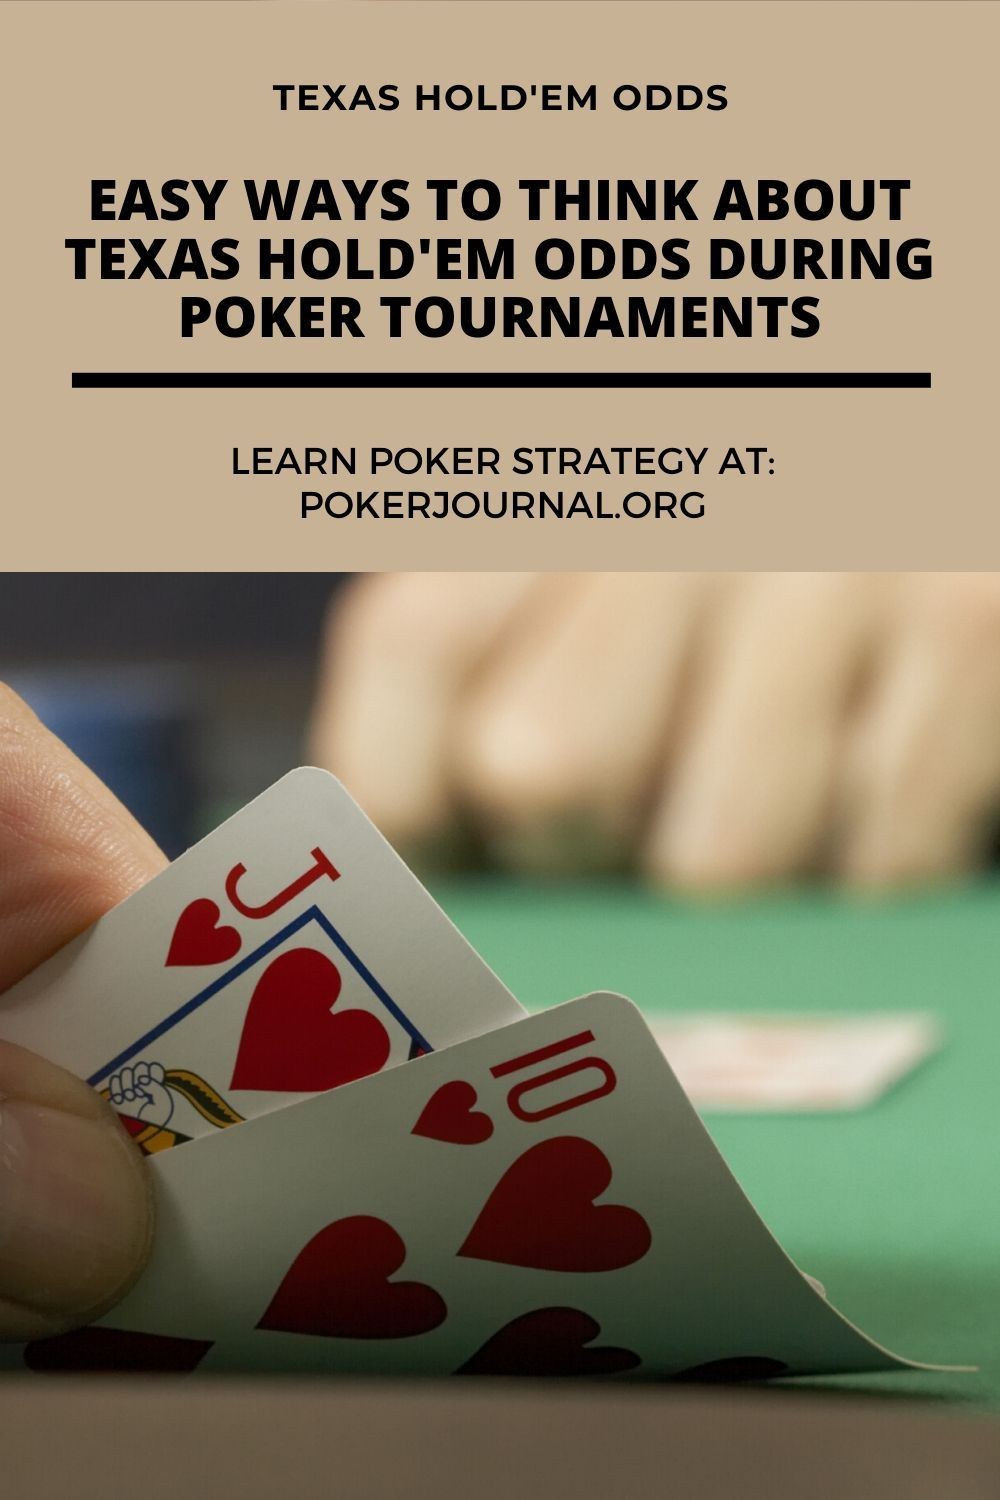 Texas Hold Em Odds Easy Ways To Think About Texas Hold Em Odds During Poker Tournaments Texas Holdem Poker Poker Tournament